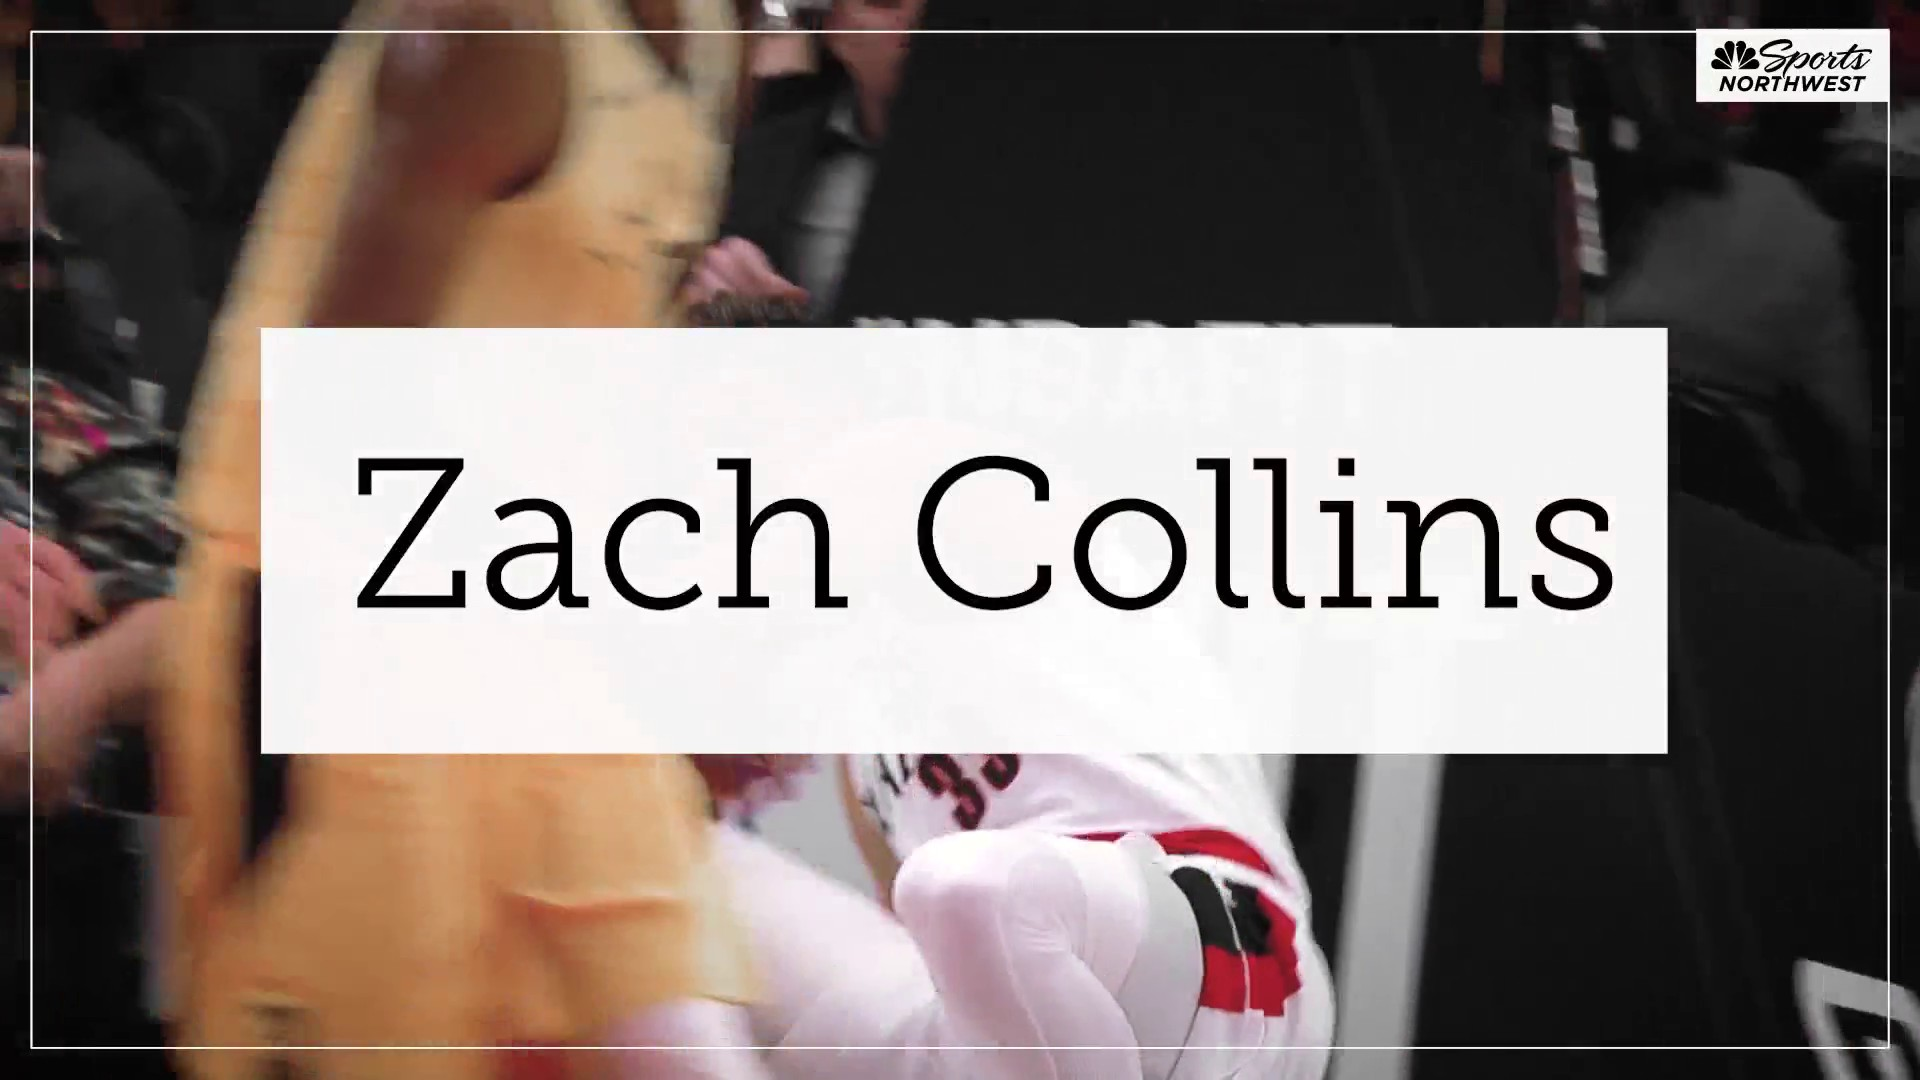 Ben Golliver: What is in store for Zach Collins next season?